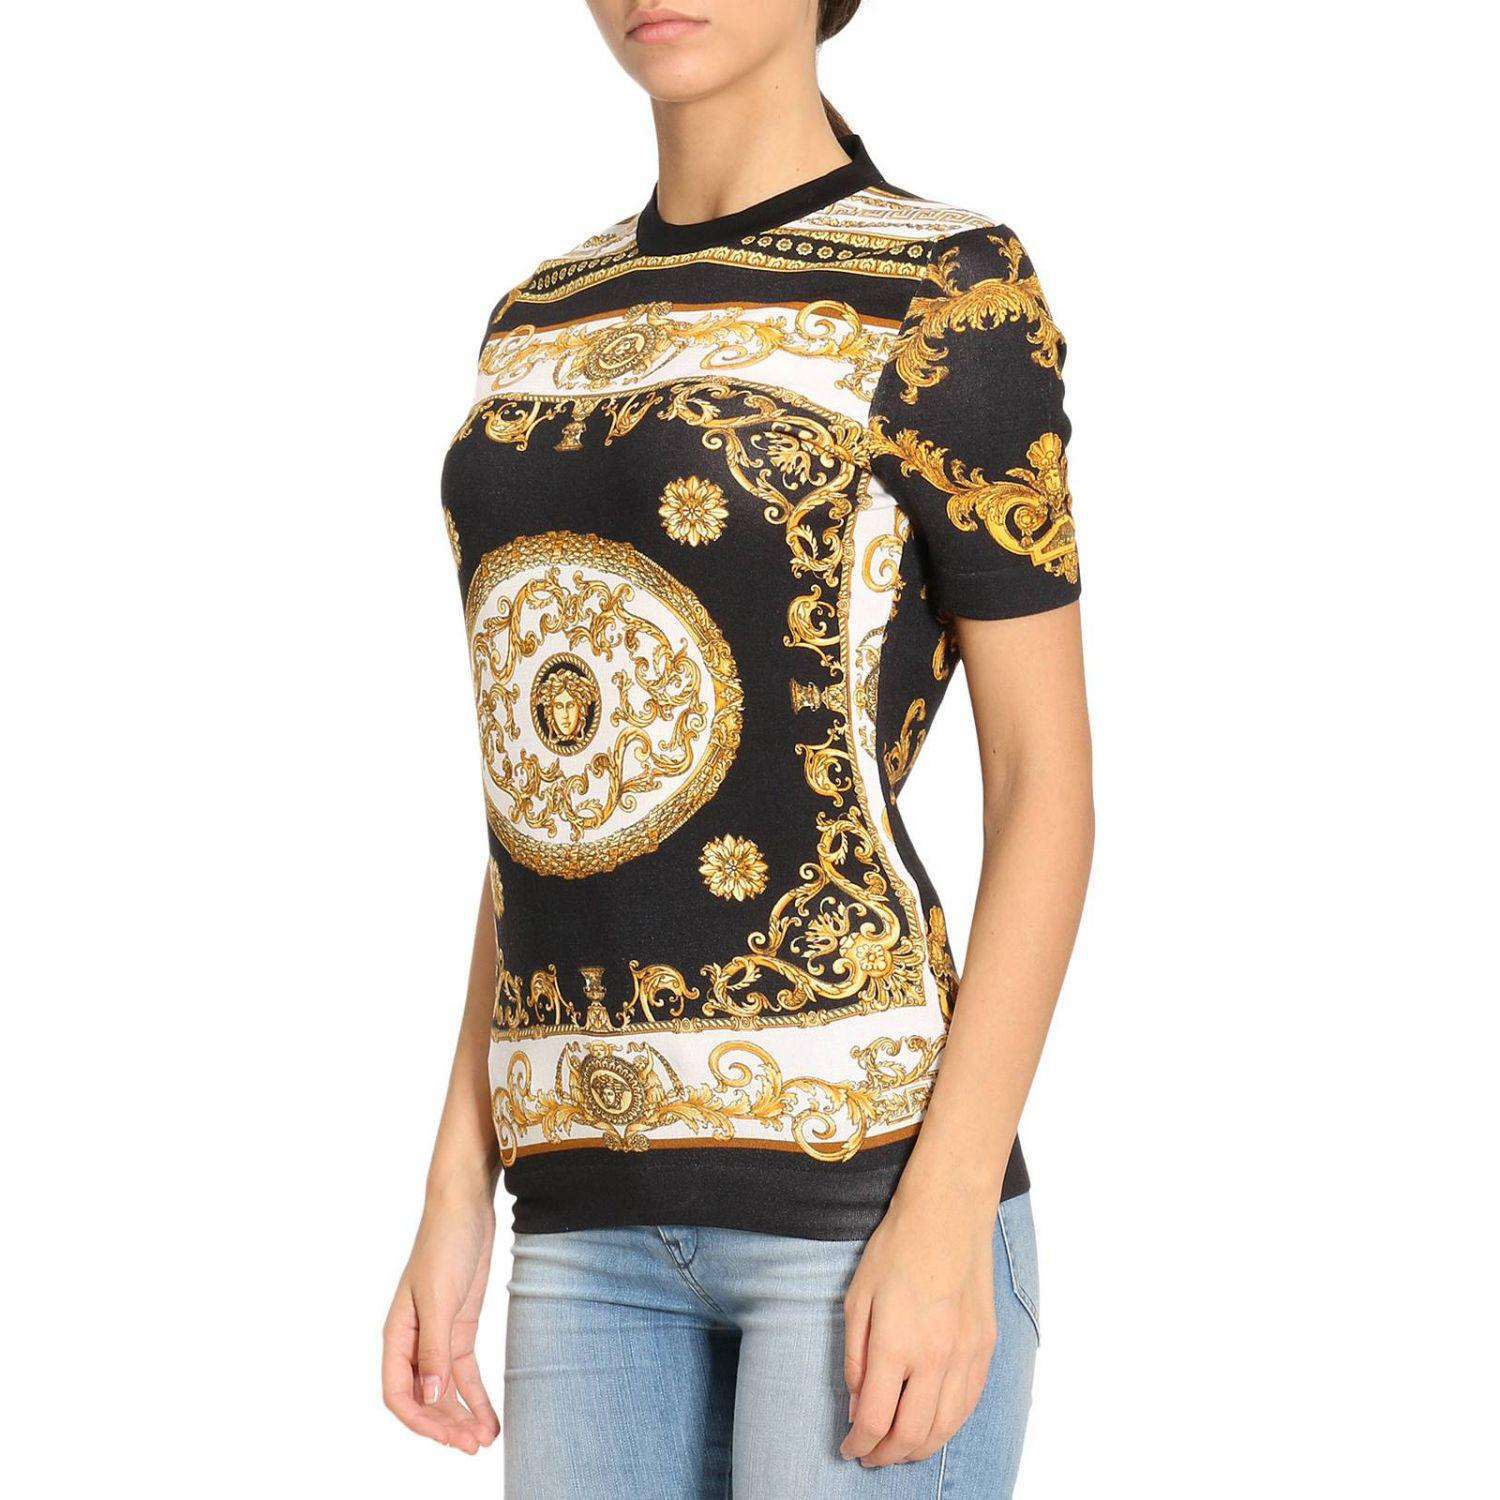 5b393ab81aac Lyst - Versace T-shirt Women in Metallic